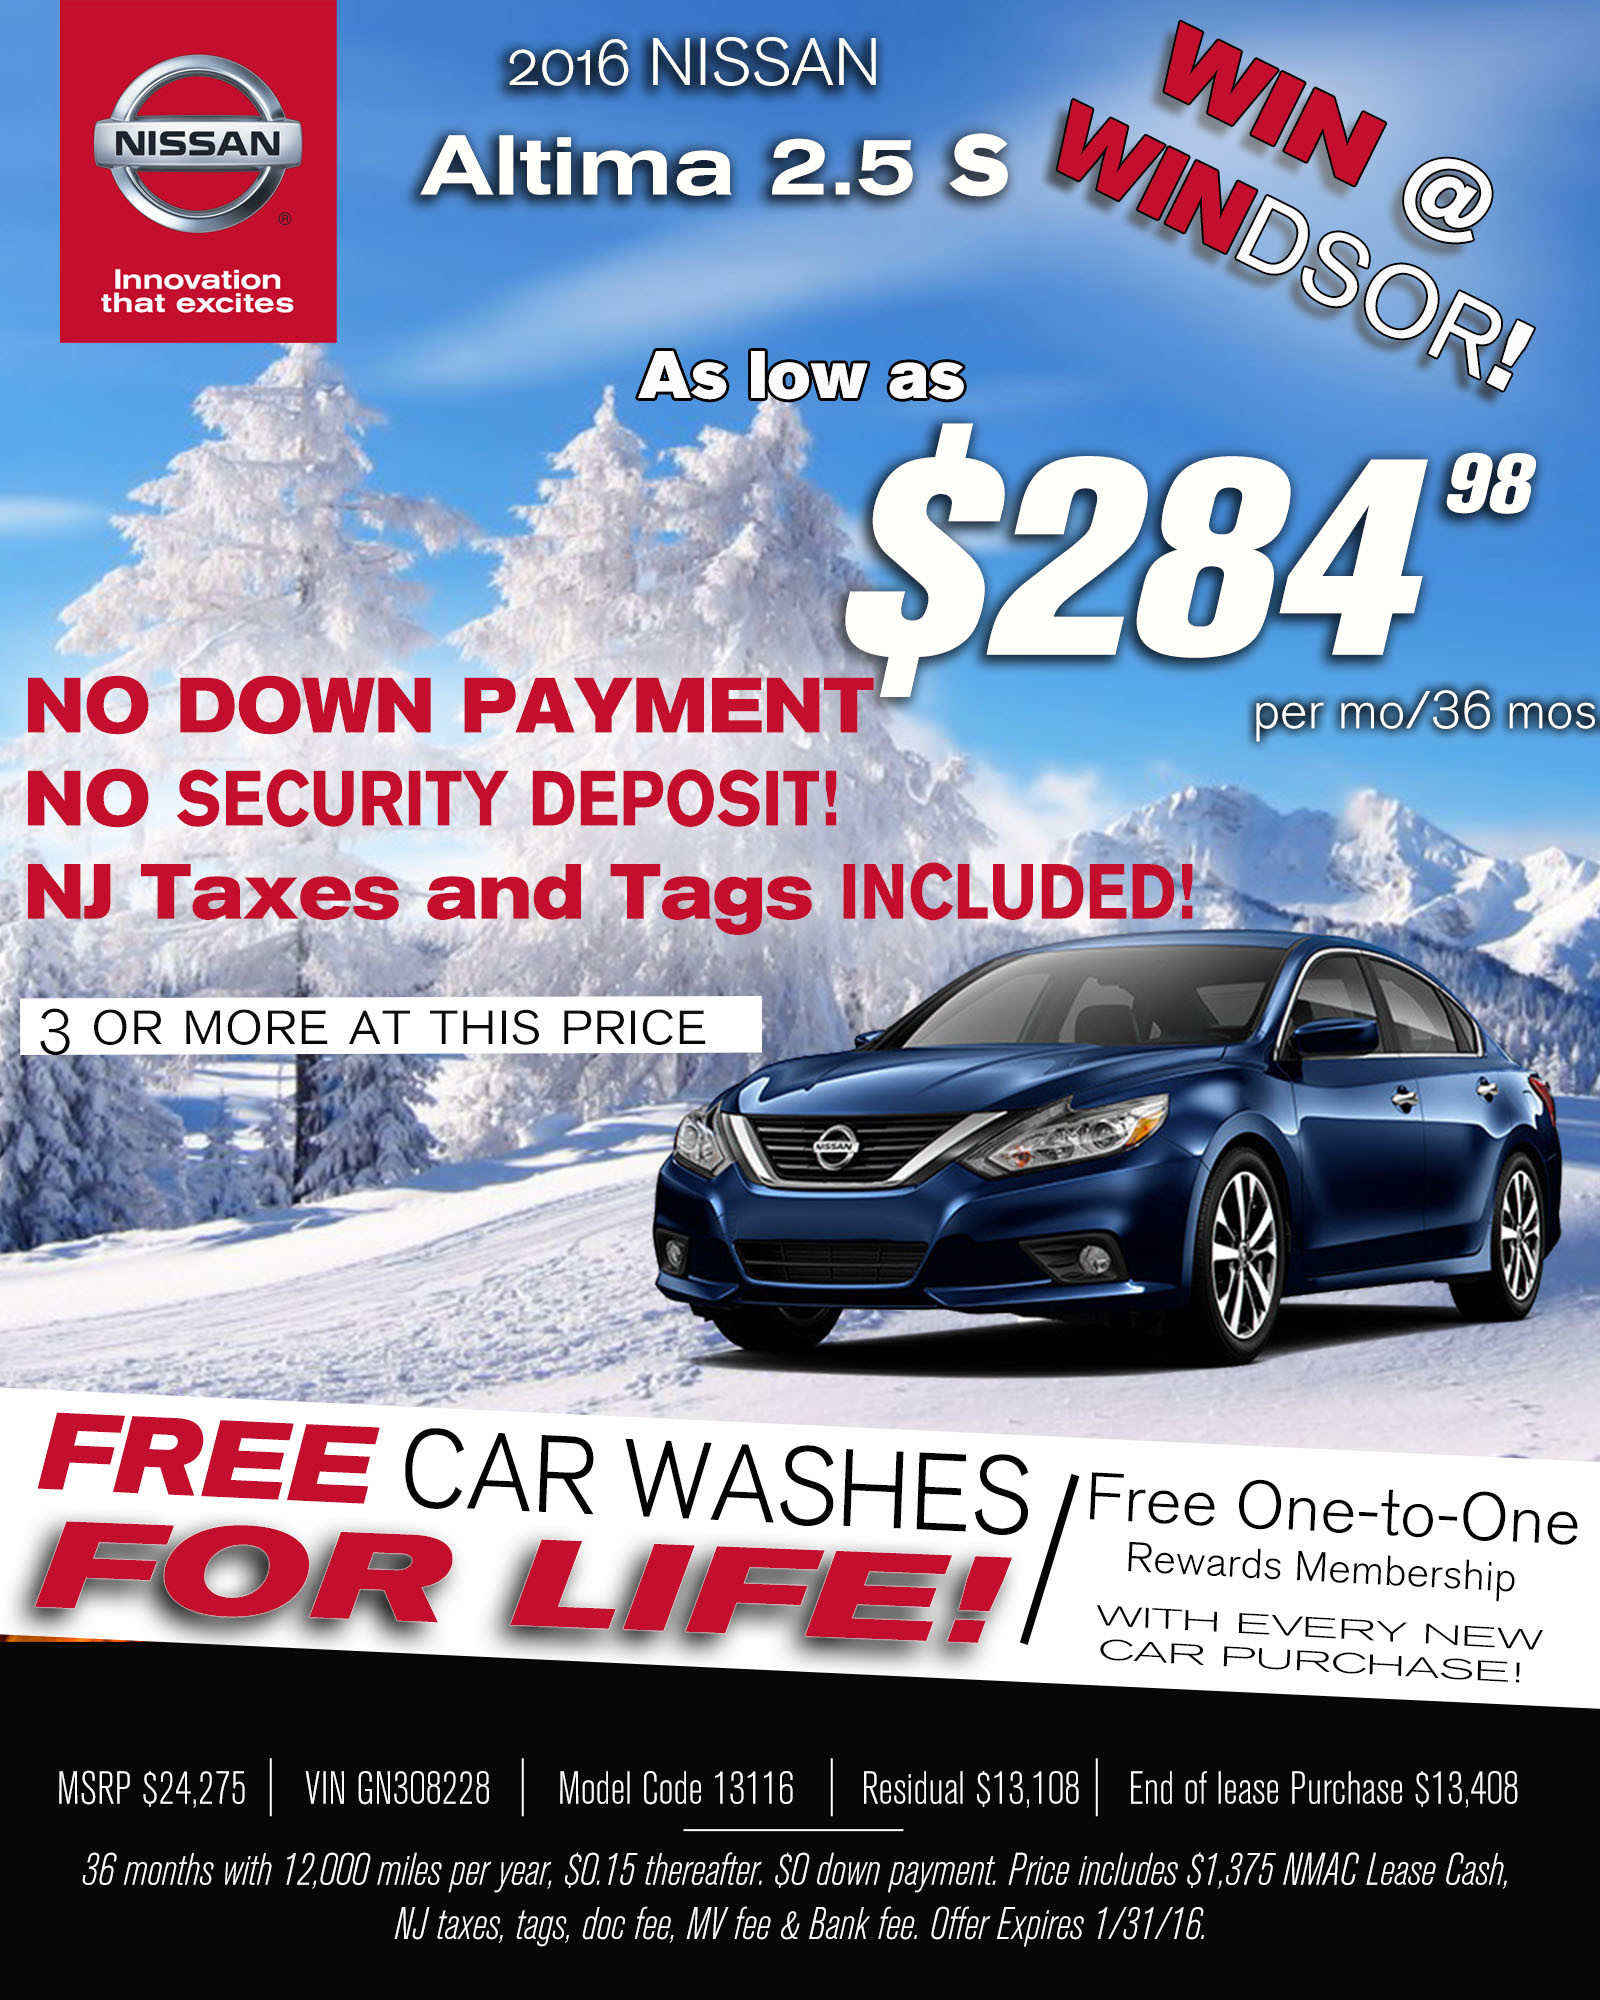 Altima Sign and Drive Lease Windsor Nissan